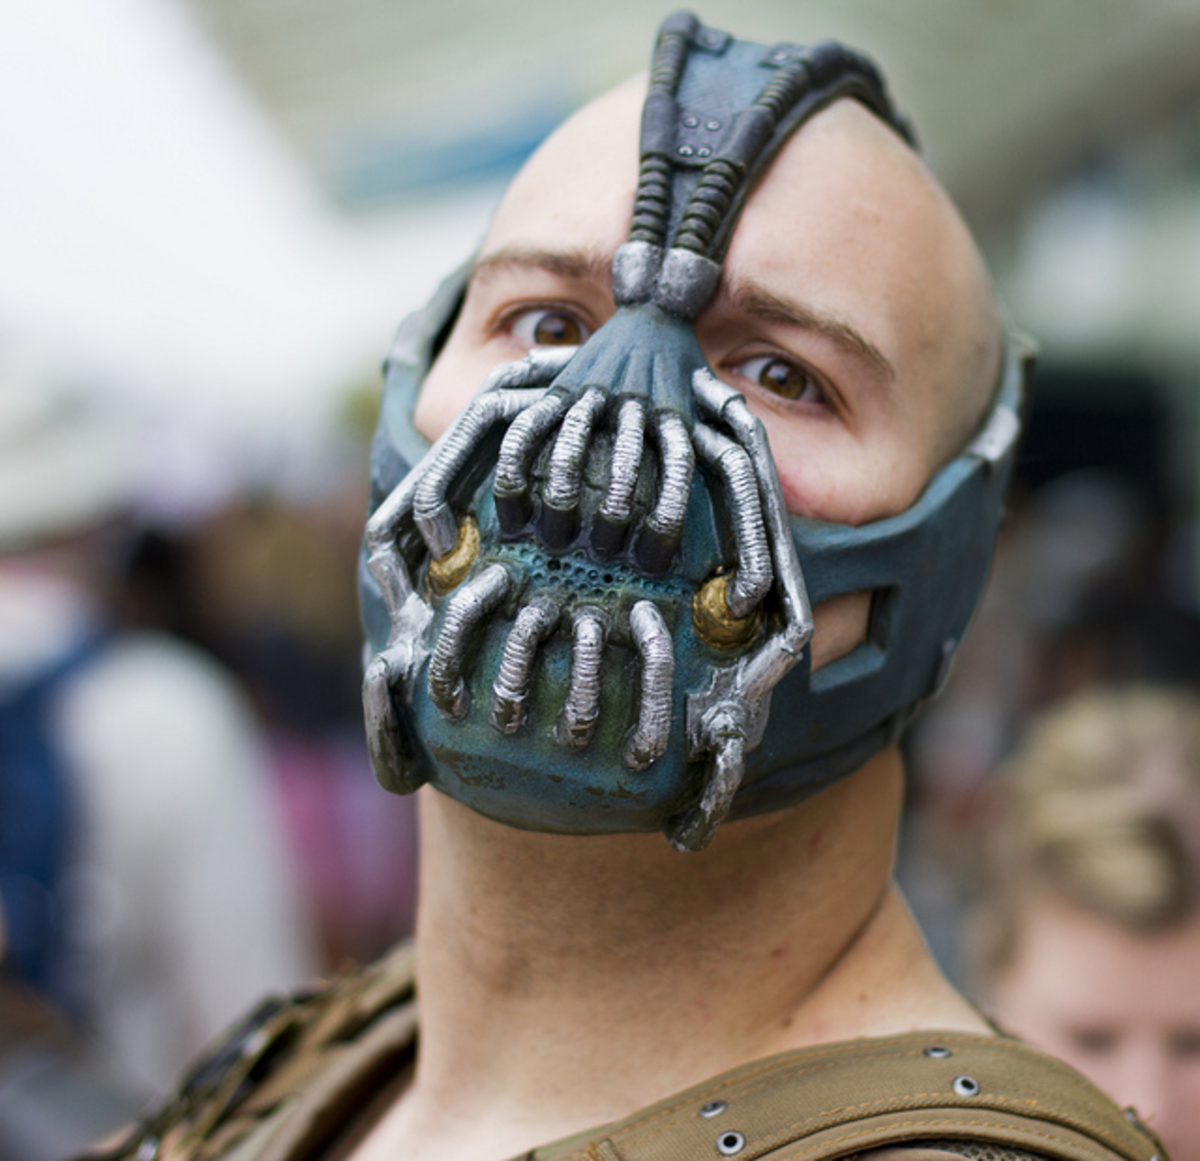 Awesome mask spotted at a Comic Con event. This is an example of a 'high-end' type of mask which a lot of time has obviously gone into. Skill and patience is required to make a replica mask like this one, but it is achievable!